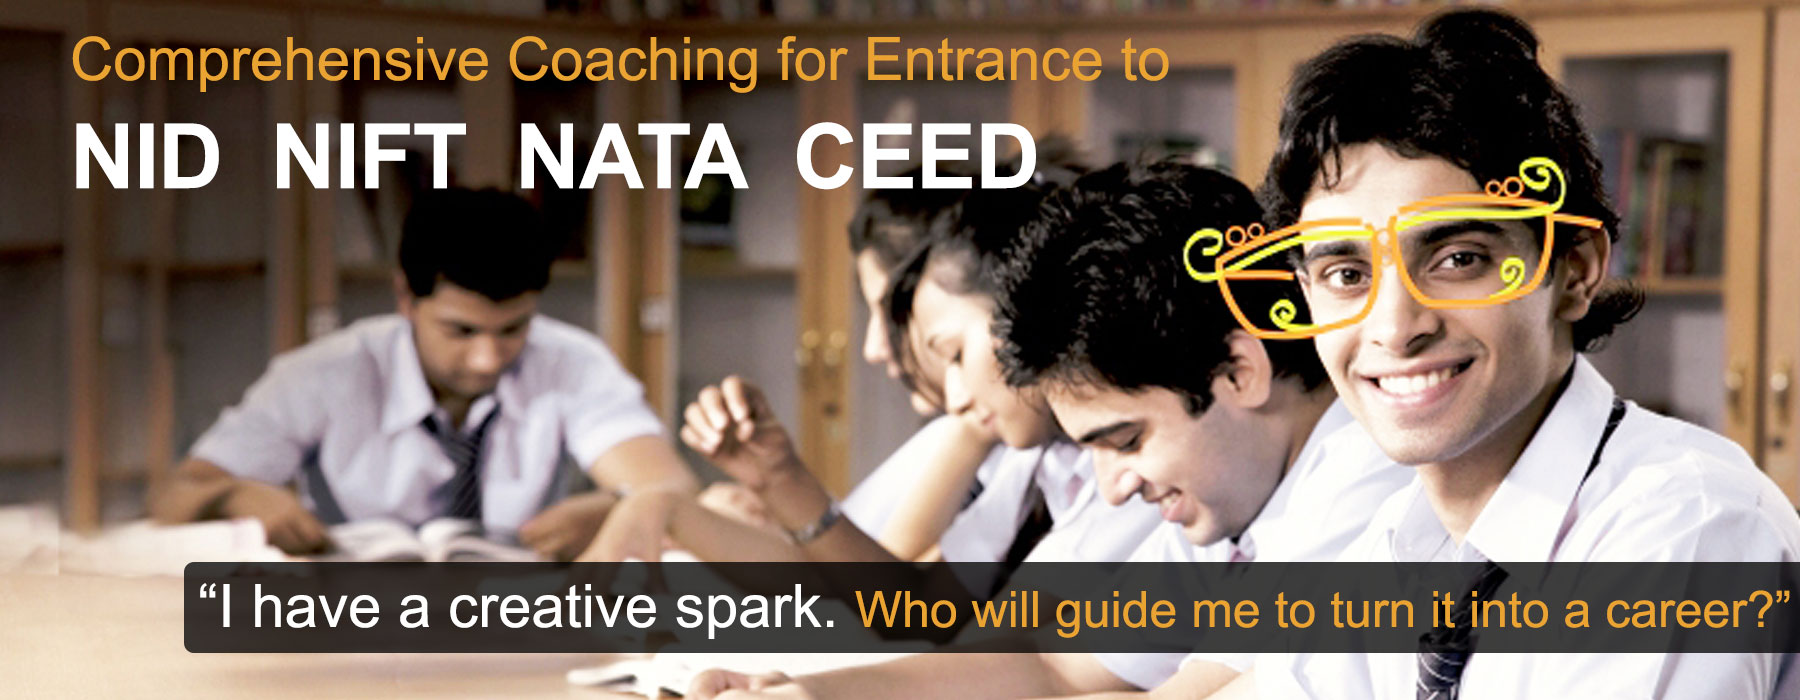 Student showing Comprehensive Coaching for NID, NIFT, NATA, CEED